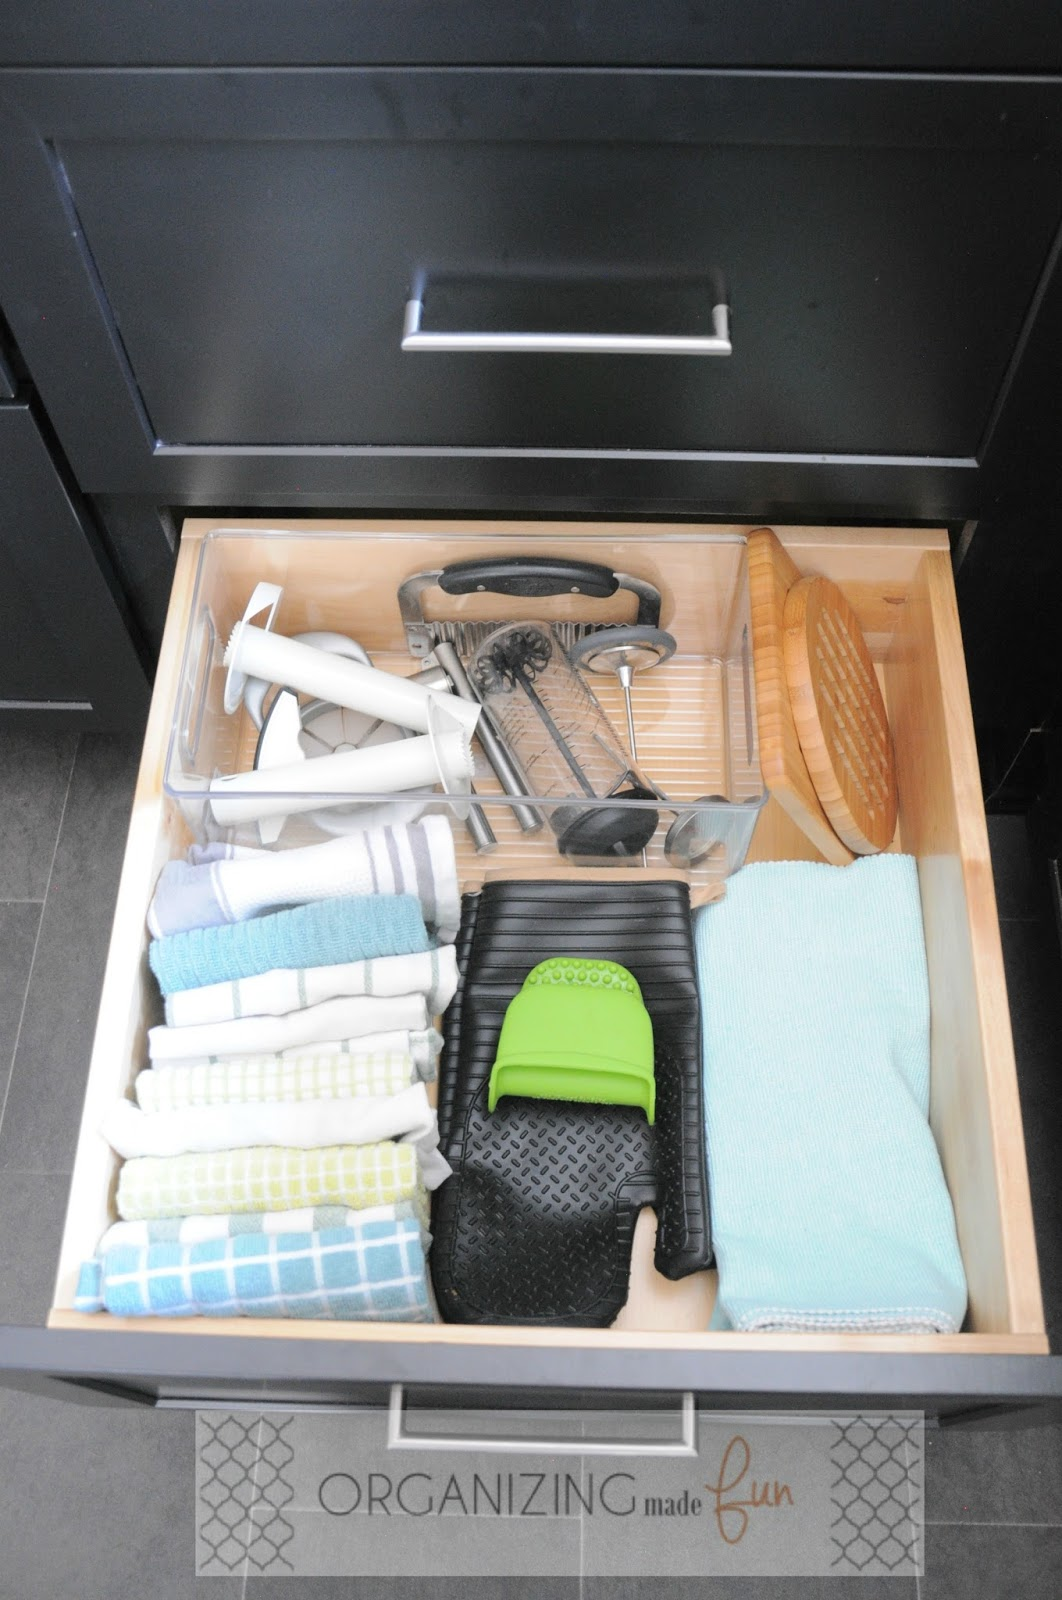 How To Organize Your Kitchen Cabinets And Drawers Remodeling Nj The New Organizing Made